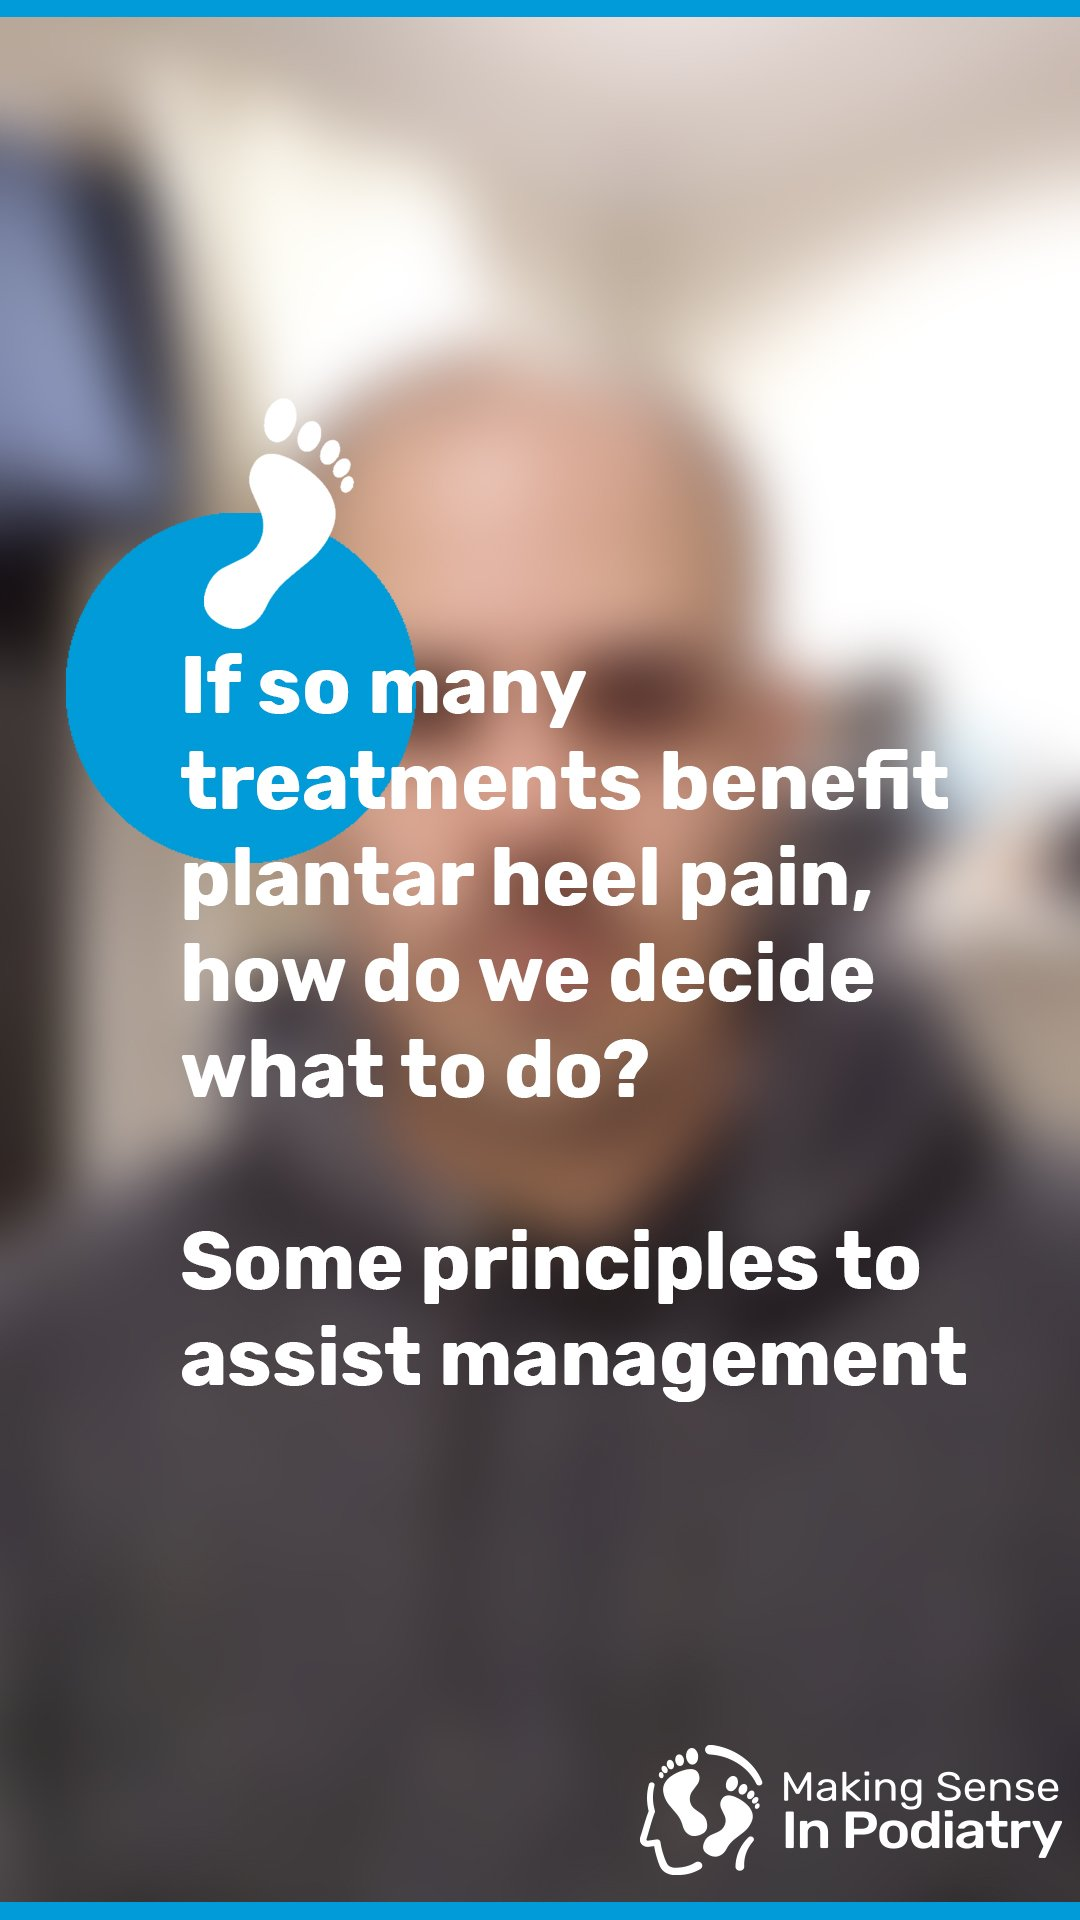 If so many treatments benefit plantar heel pain how do we decide what to do? Some principles of management.